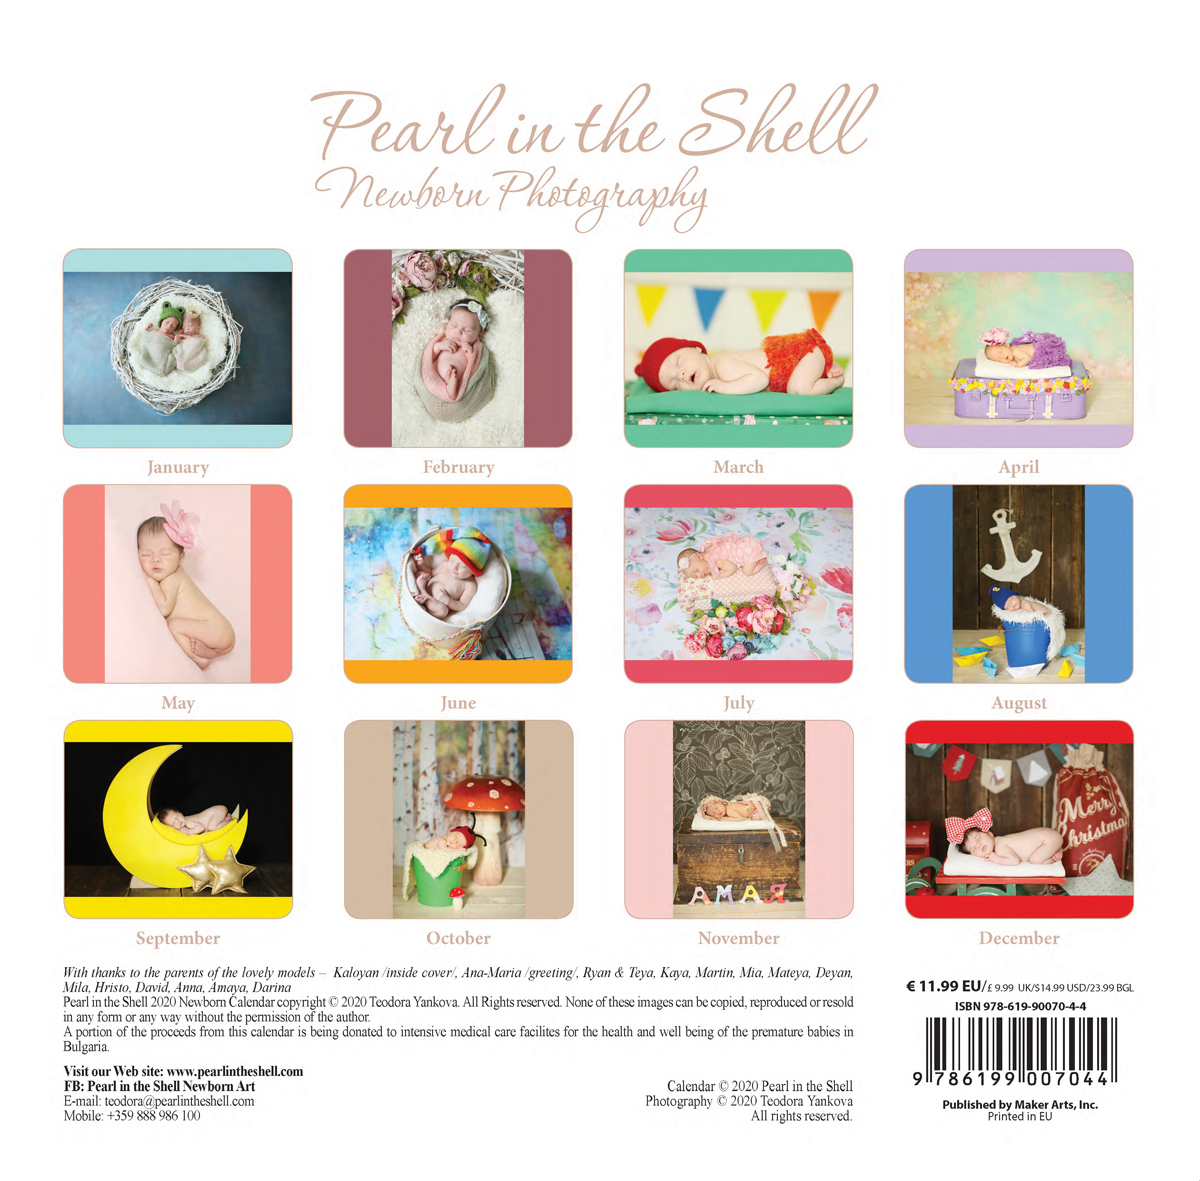 Pearl-in-the-Shell-Calendar-2020 (28)